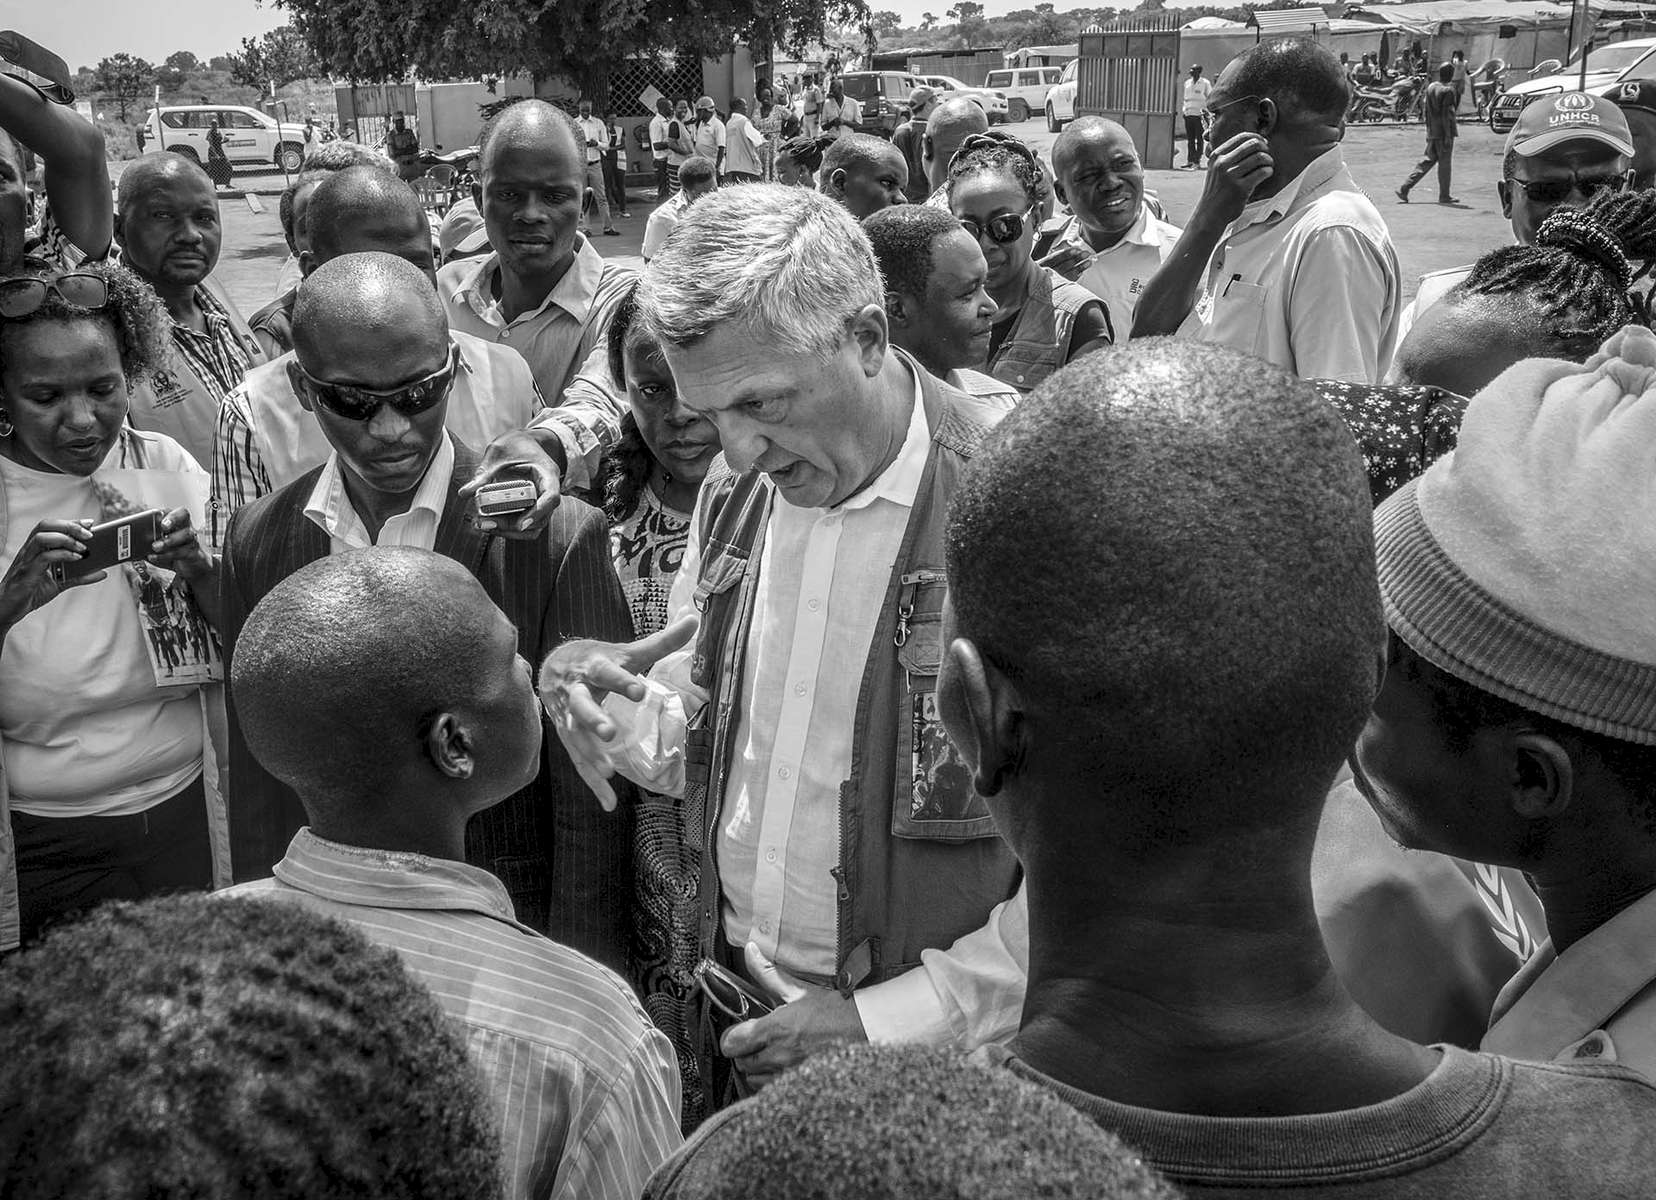 "Filippo Grandi, United Nations High Commissioner for Refugees, engages refugees from South Sudan at Pagrinya refugee resettlement in Adjumani district of Uganda August 29, 2016. Grandi was recently quated by the Guardian newspaper saying Uganda  is now ""at breaking point"".""Uganda has continued to maintain open borders,"" said Ruhakana Rugunda, Uganda's prime minister. ""But this unprecedented mass influx is placing enormous strain on our public services and local infrastructure."" © Jiro Ose"